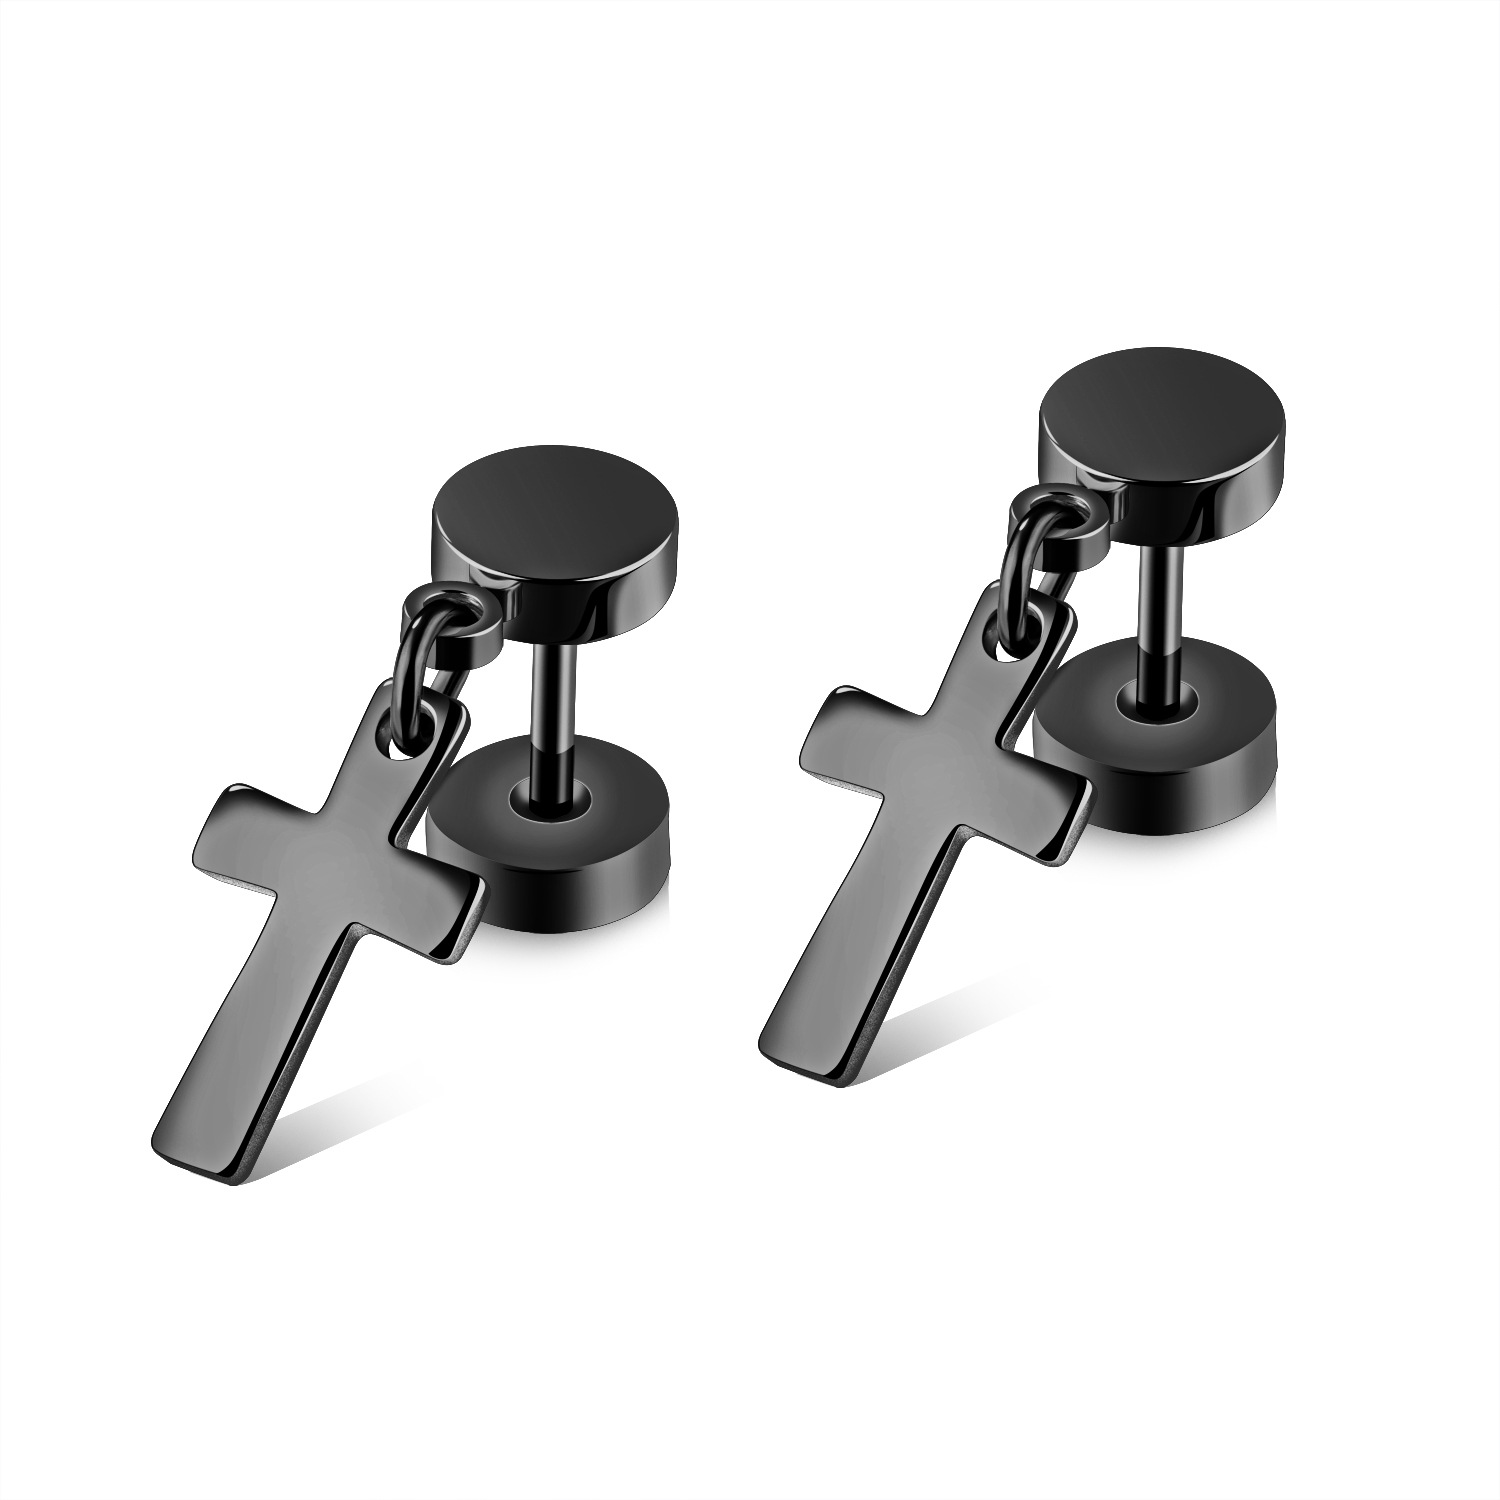 Double Size Earrings Cross Stainless Steel Titanium Black Gold Pleated Ear Stud for Men Women Ear Ring Geometric Earring Jewelry